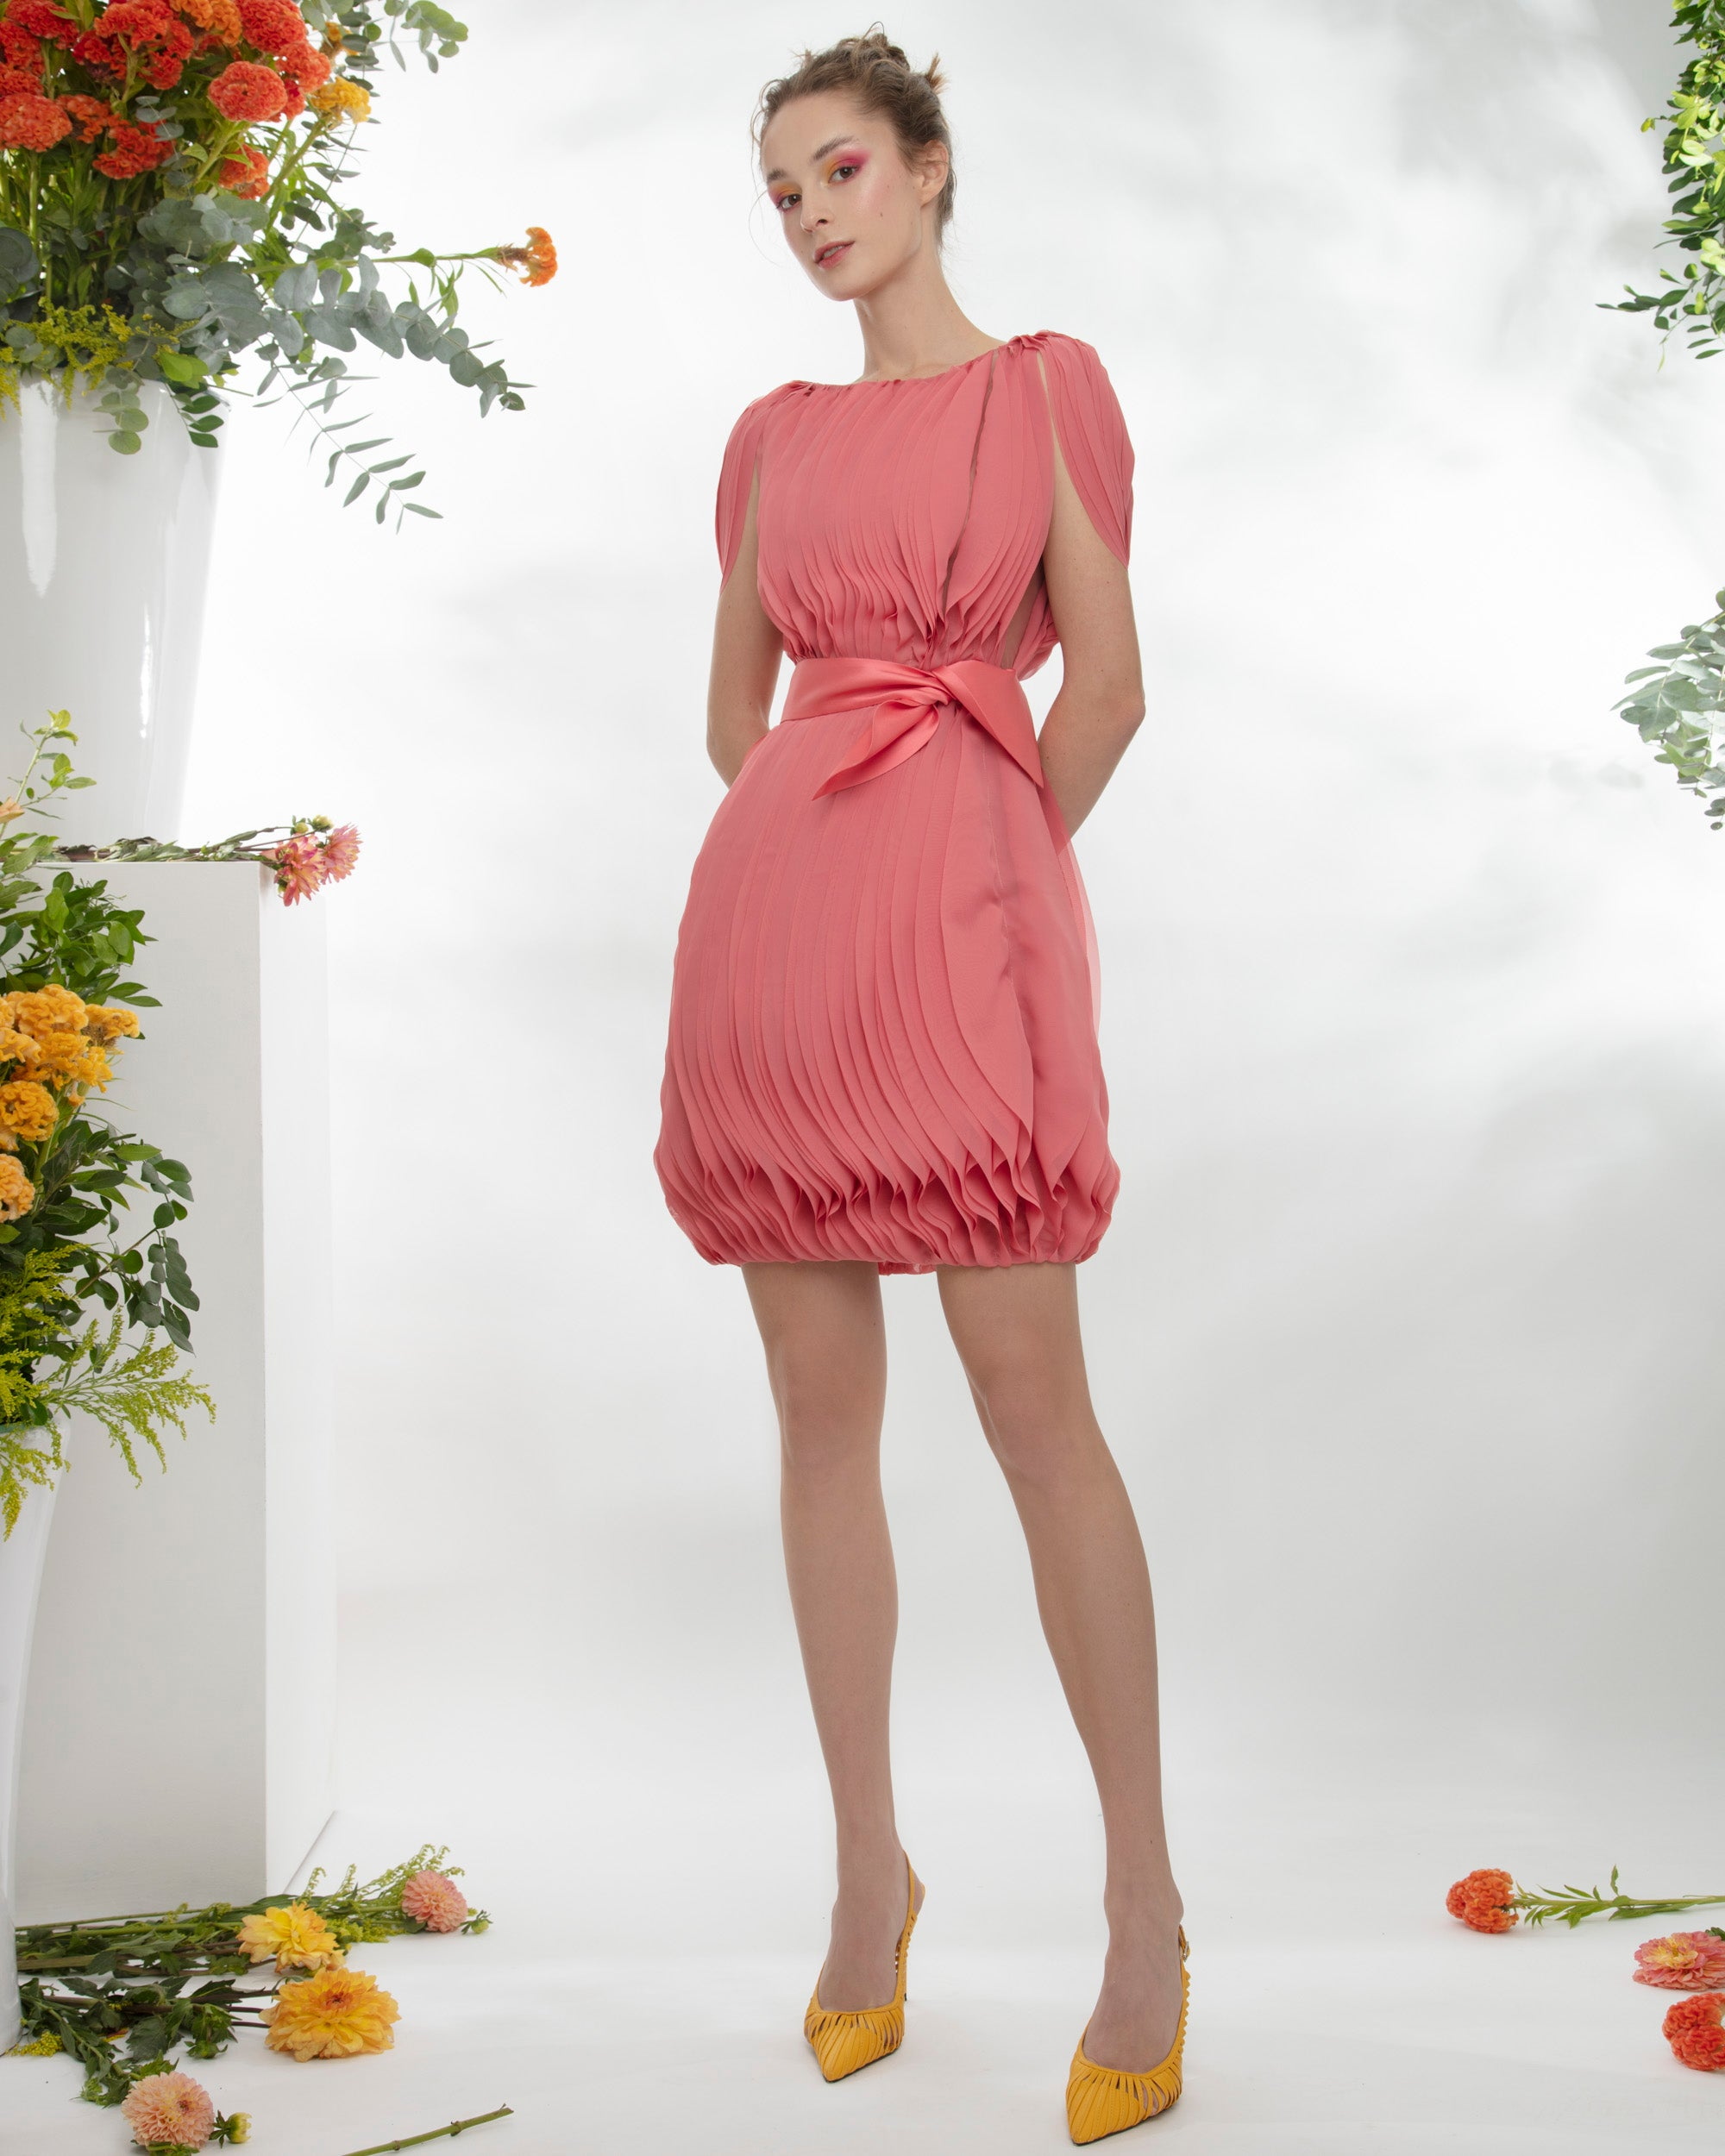 3D Chiffon Short Dress  With Detachable Belt